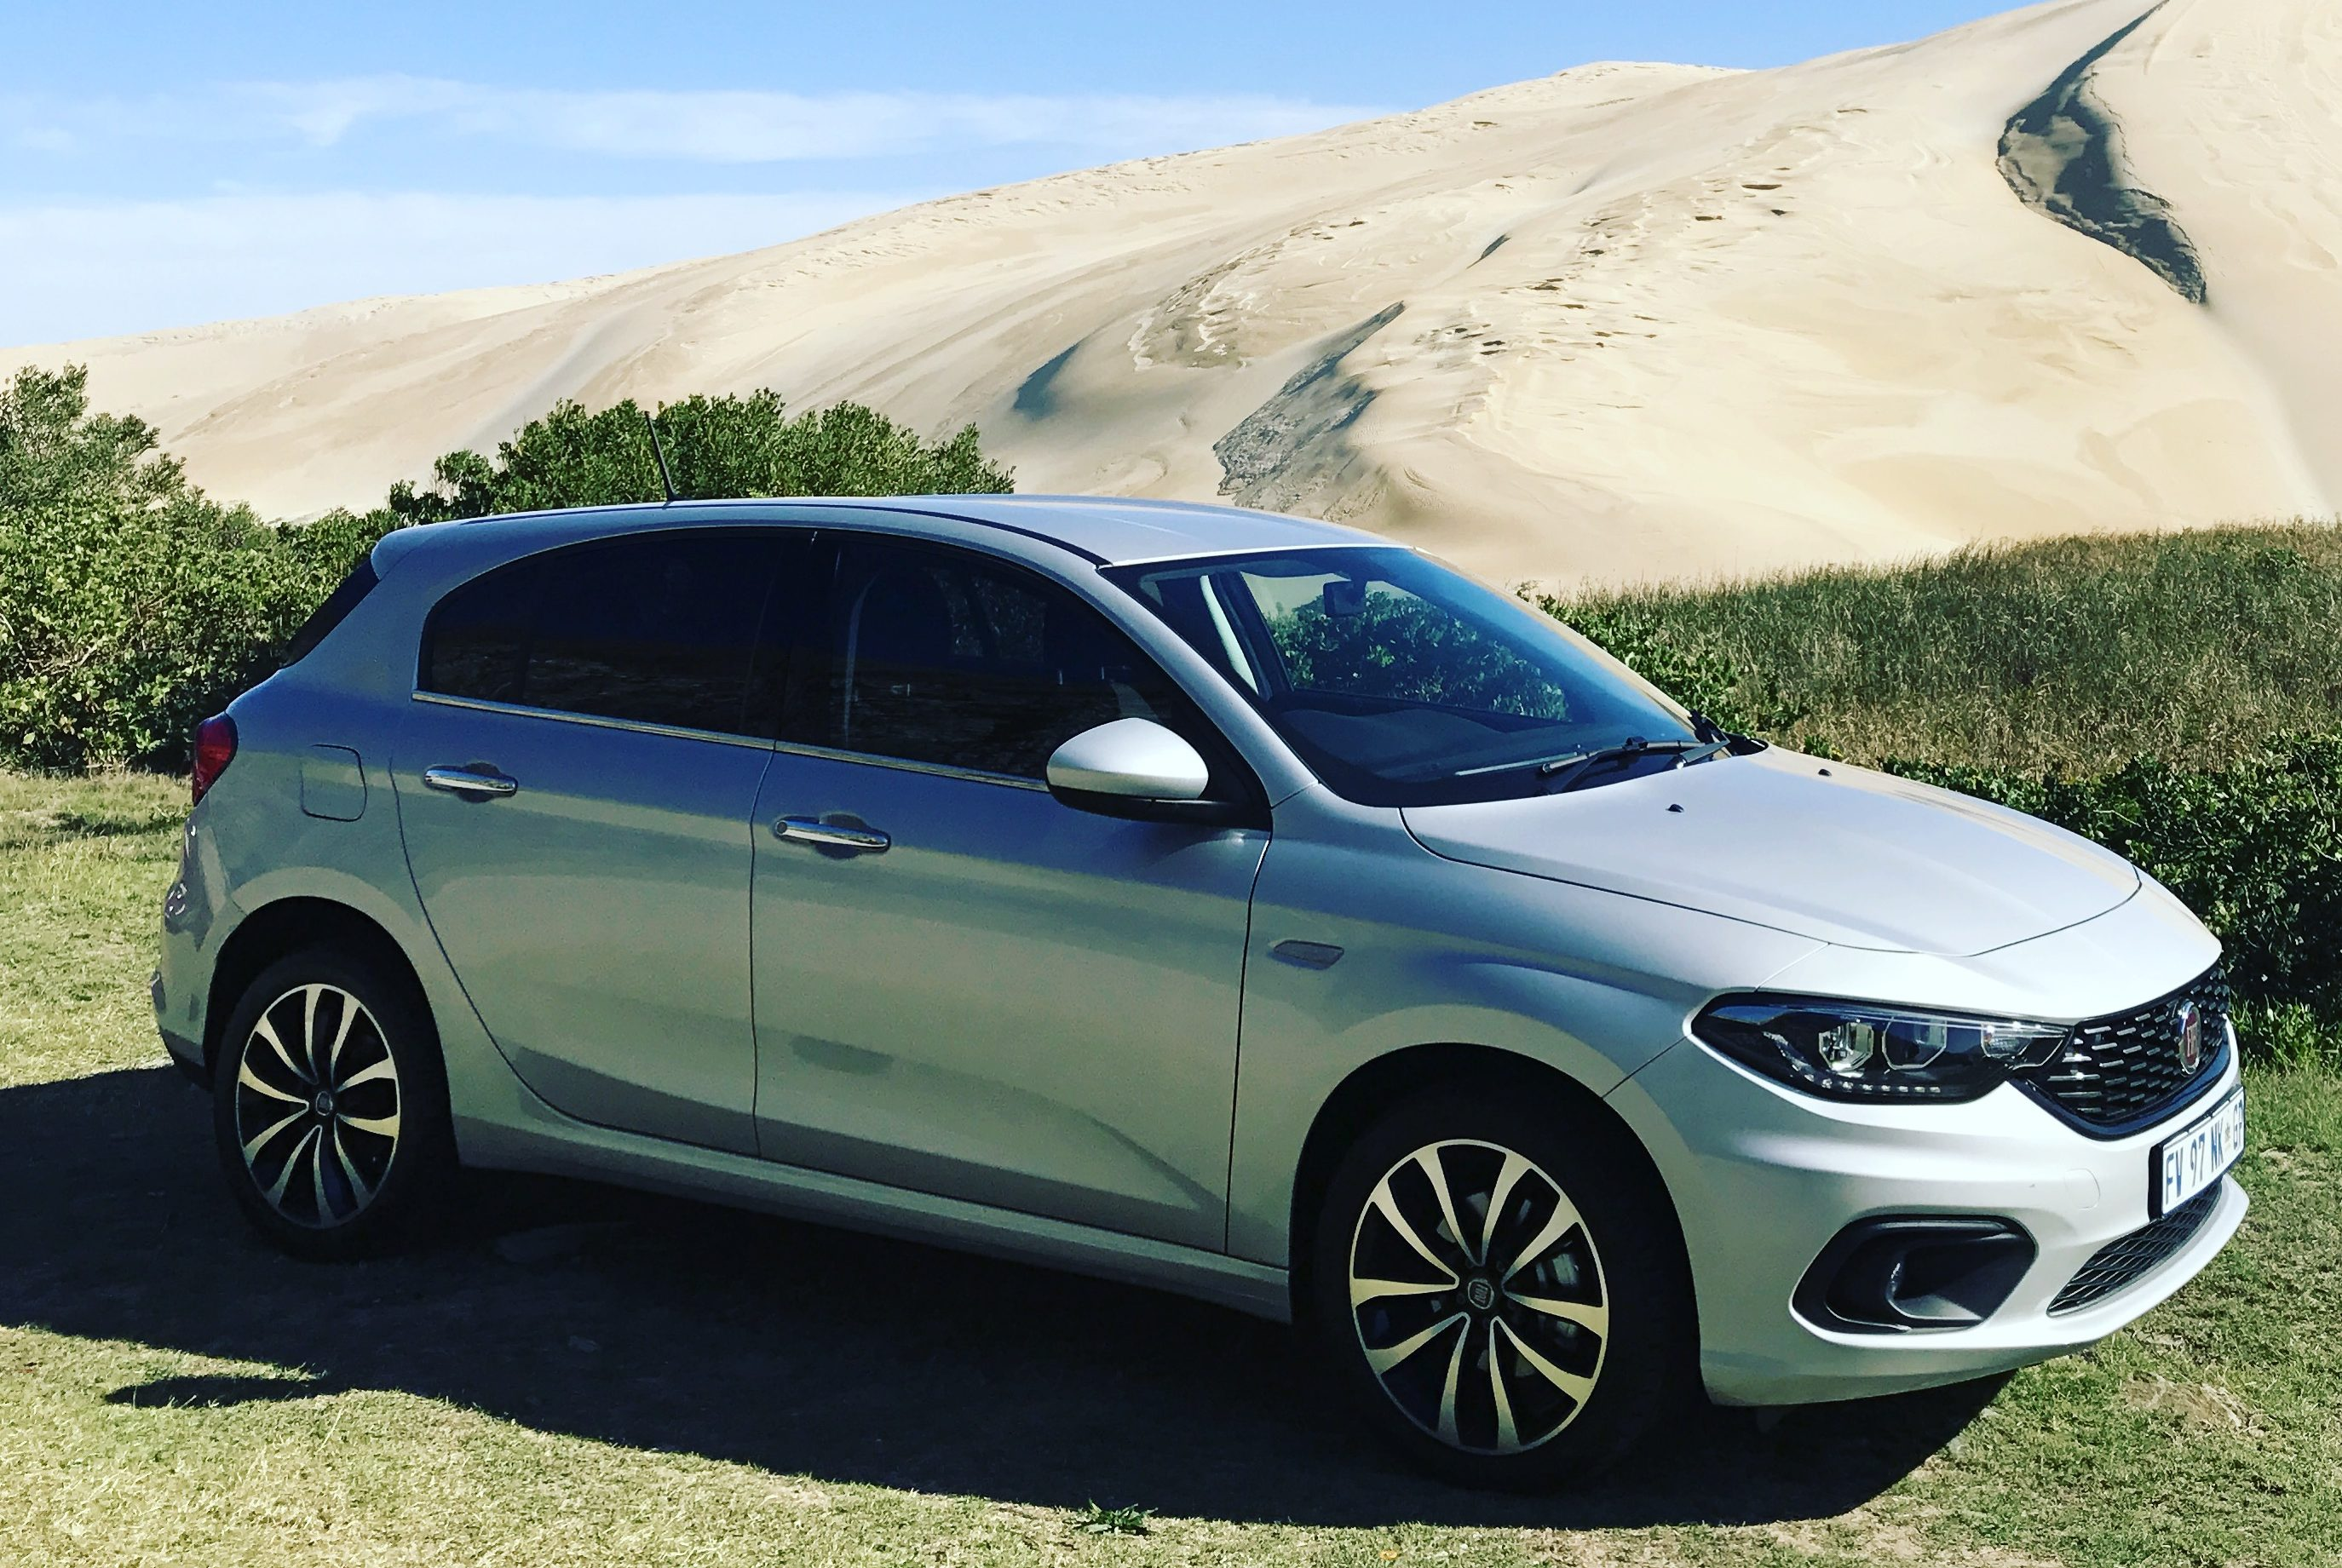 No typo in Tipo: We drive the Fiat Tipo